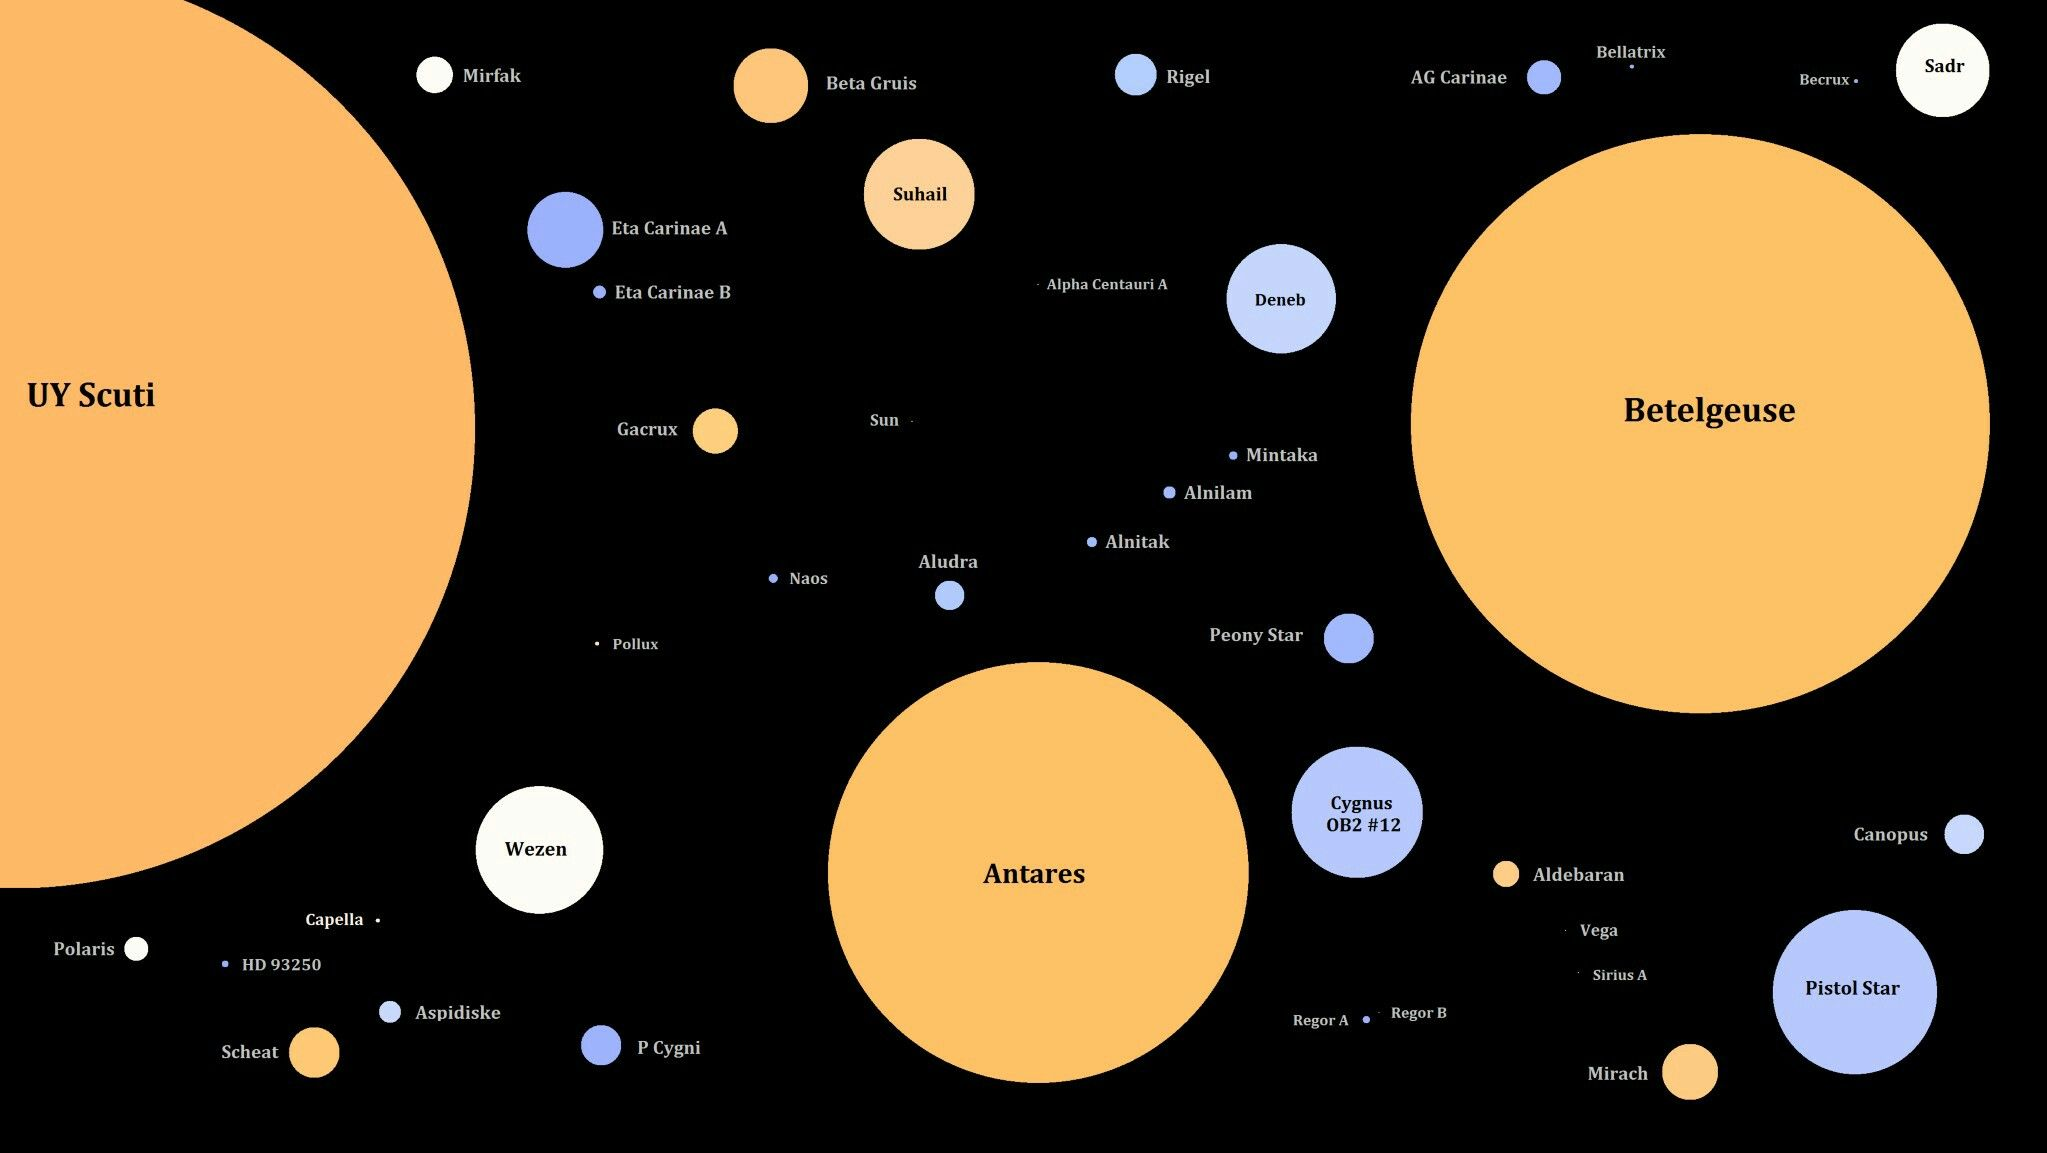 hight resolution of size comparison of many well known stars sizes are to scale in relation to each other the sun is an indiscernible speck in the middle about the size of